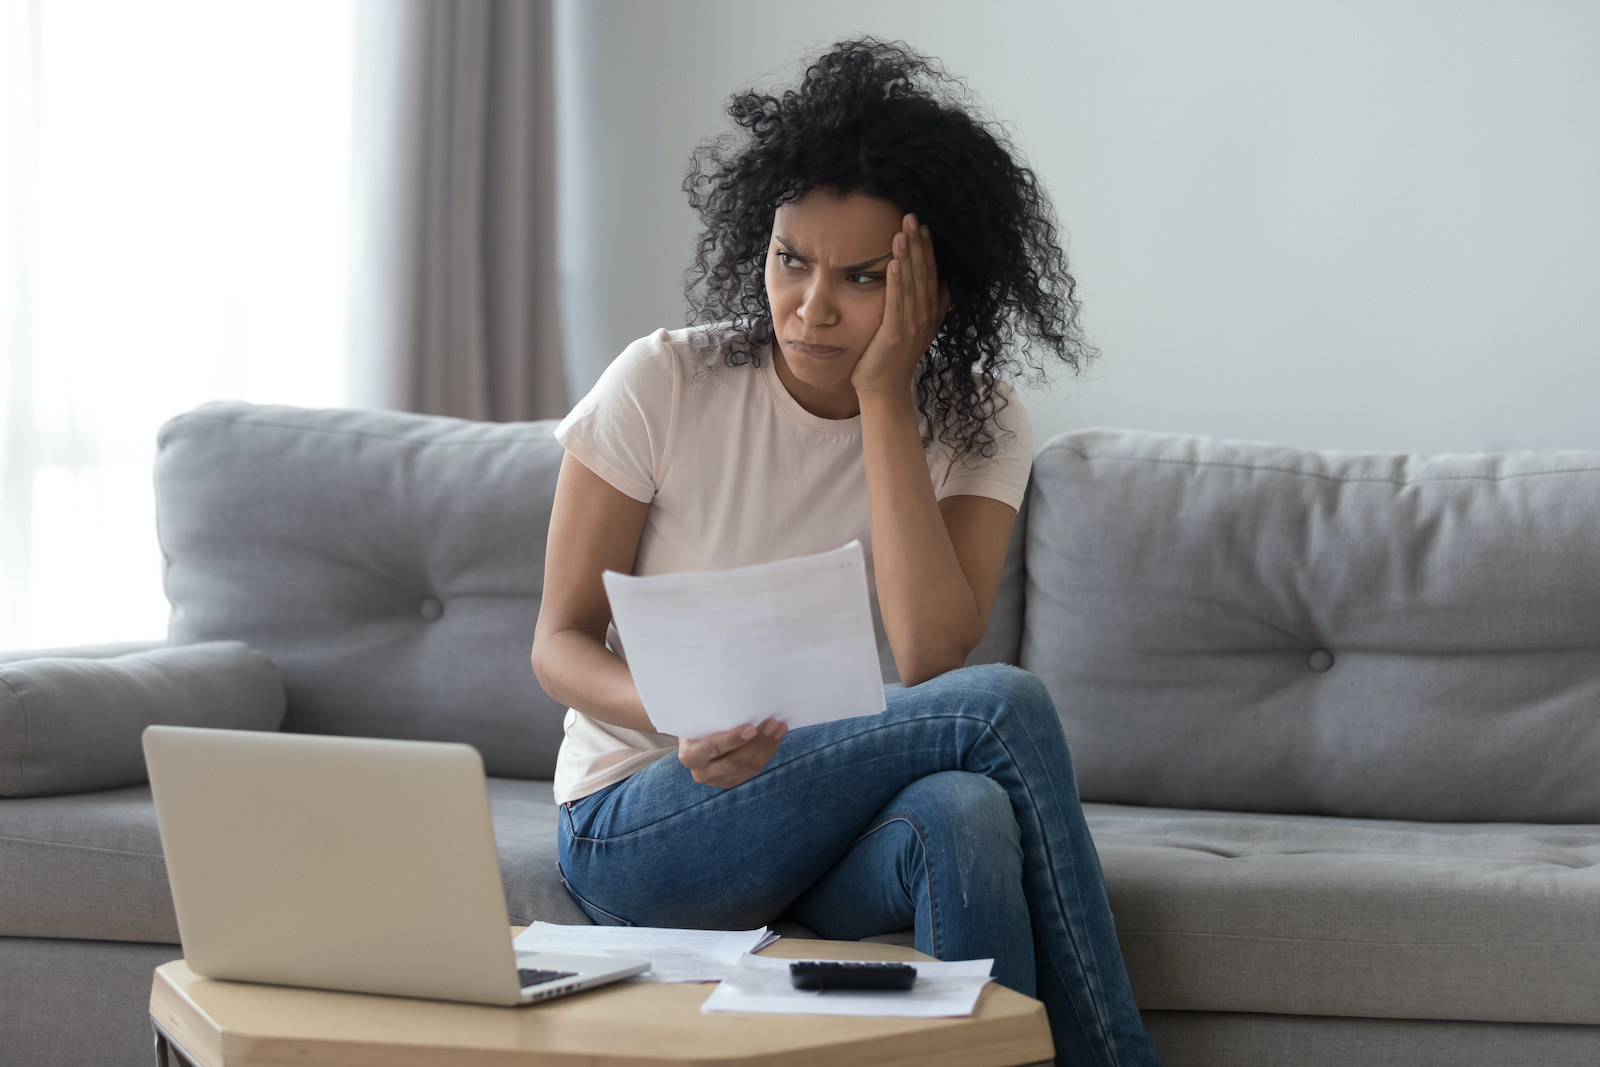 Installment loans for bad credit: A stressed woman looks at paperwork and her computer